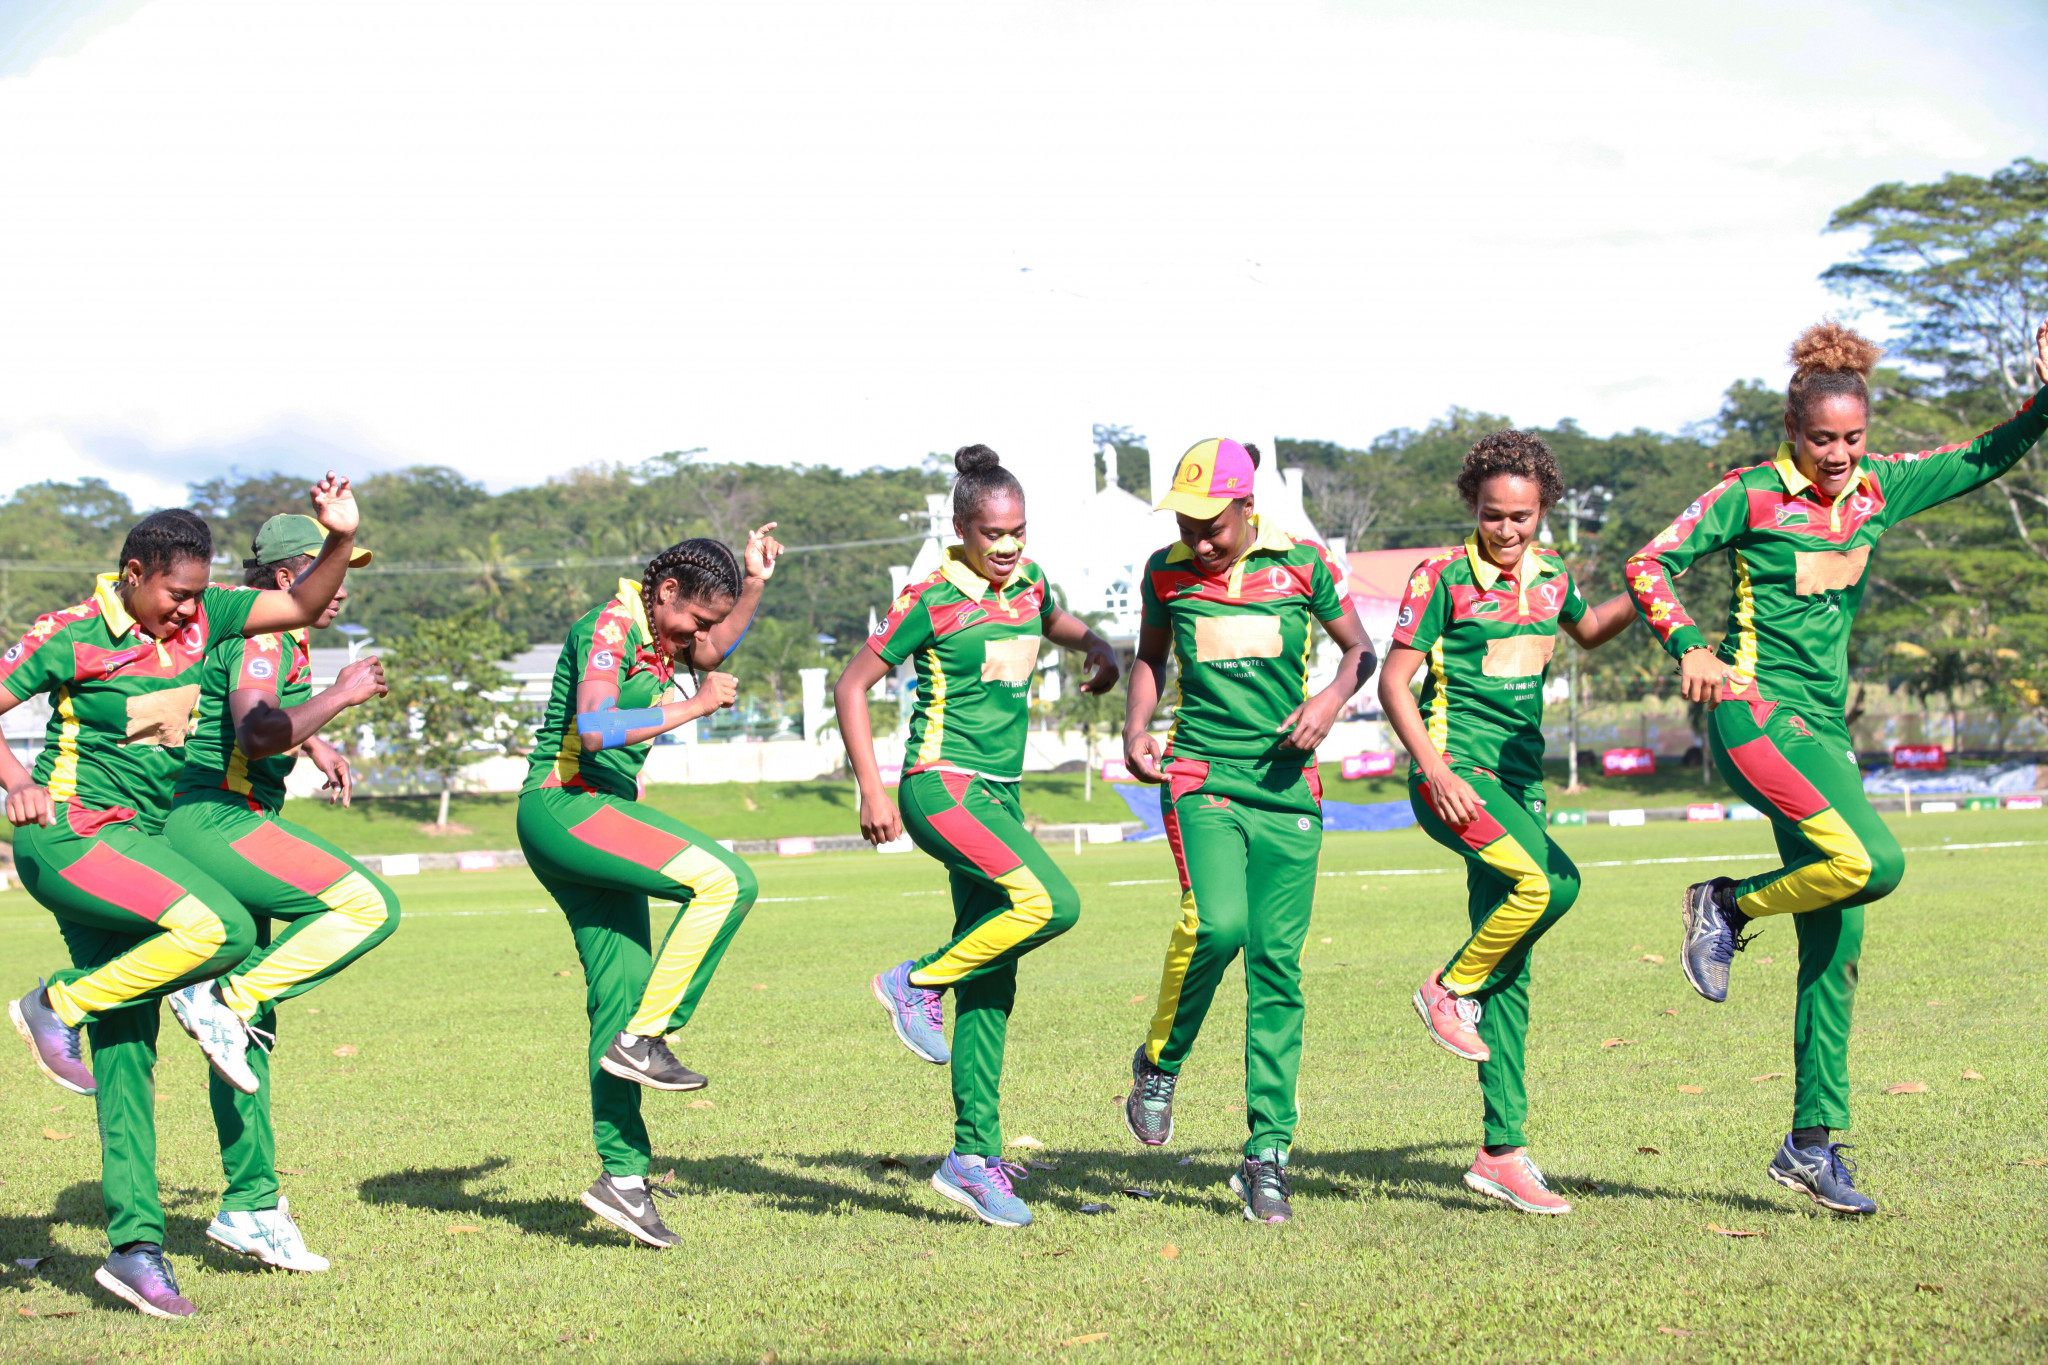 Vanuatu have won the bronze medal in the women's cricket at the 2019 Pacific Games ©Samoa 2019